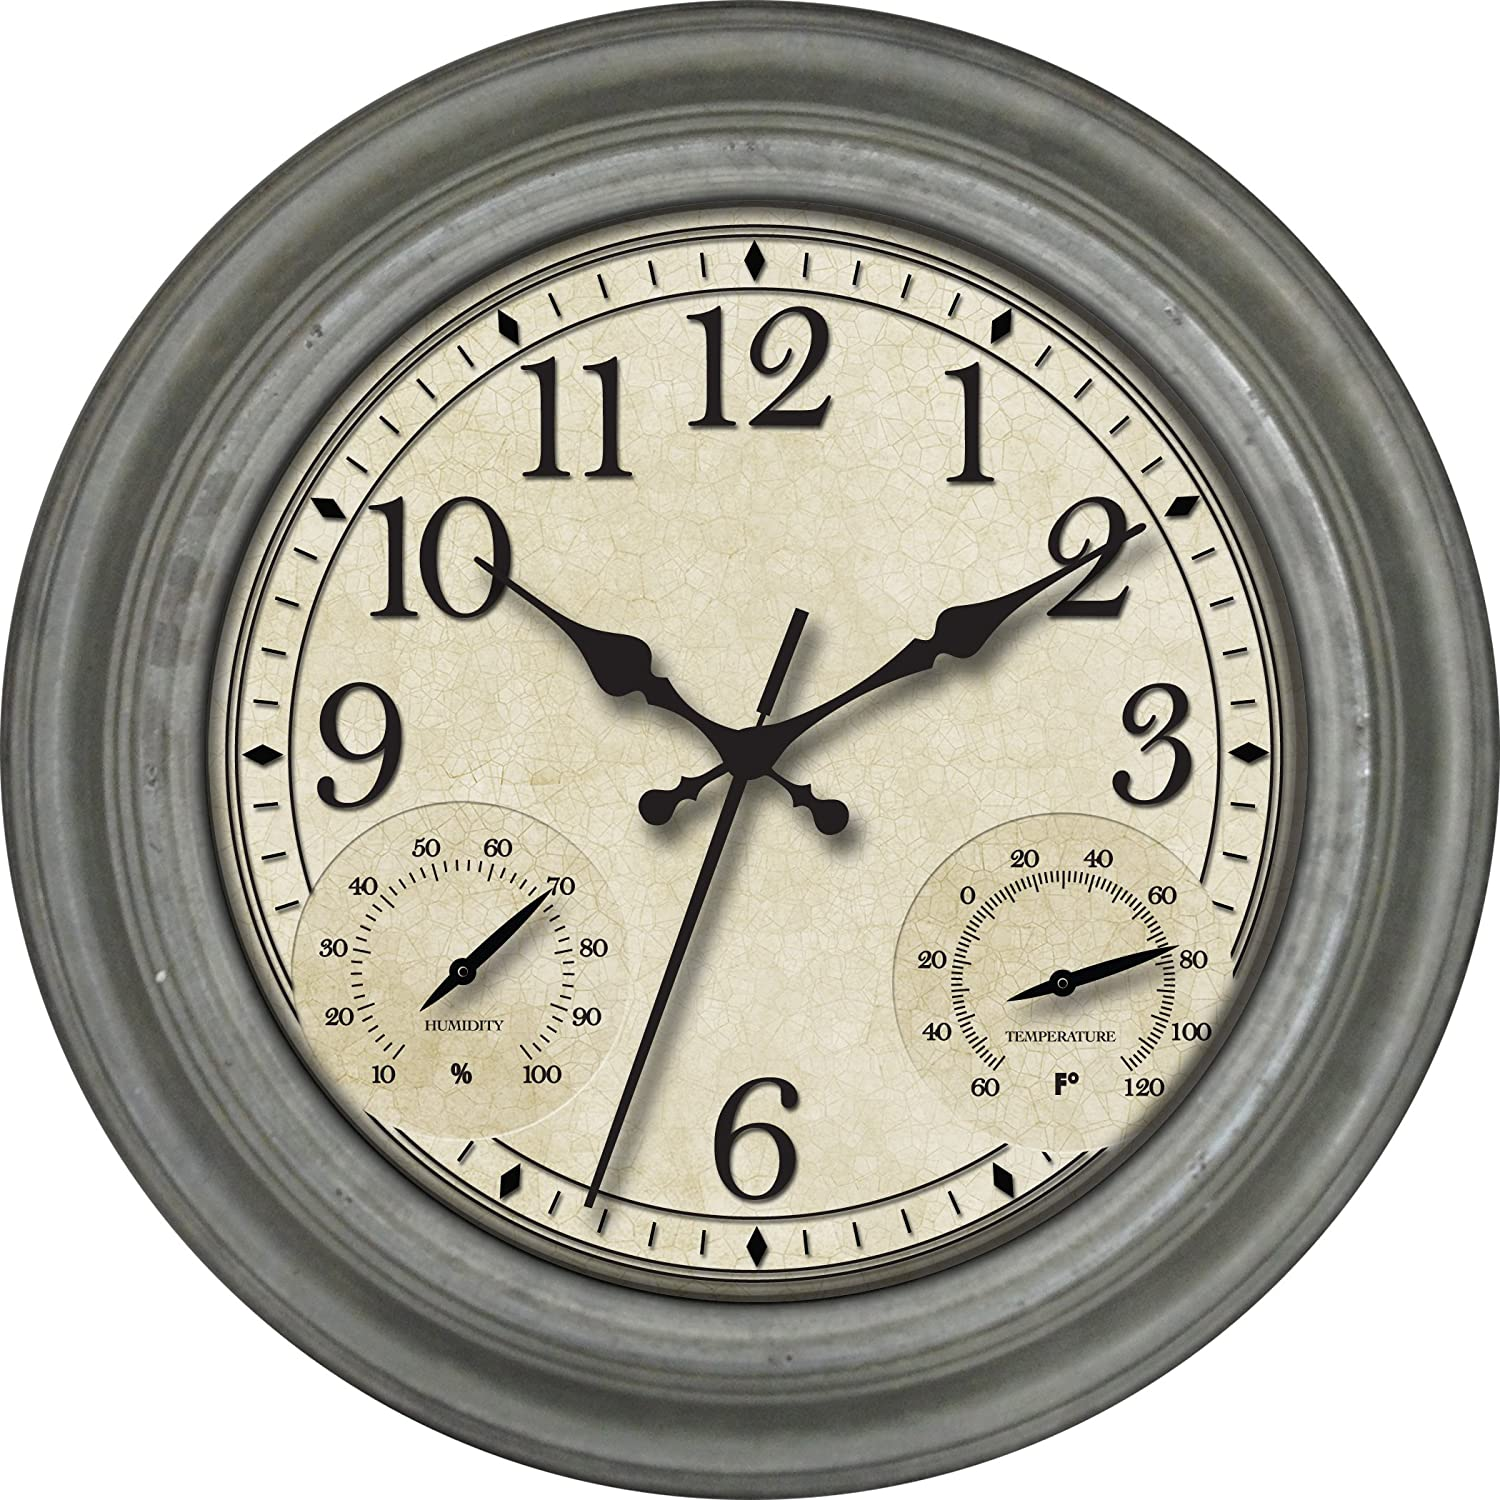 Amazon ashton sutton indoor and outdoor wall clock with amazon ashton sutton indoor and outdoor wall clock with galvanized finish case home kitchen amipublicfo Image collections